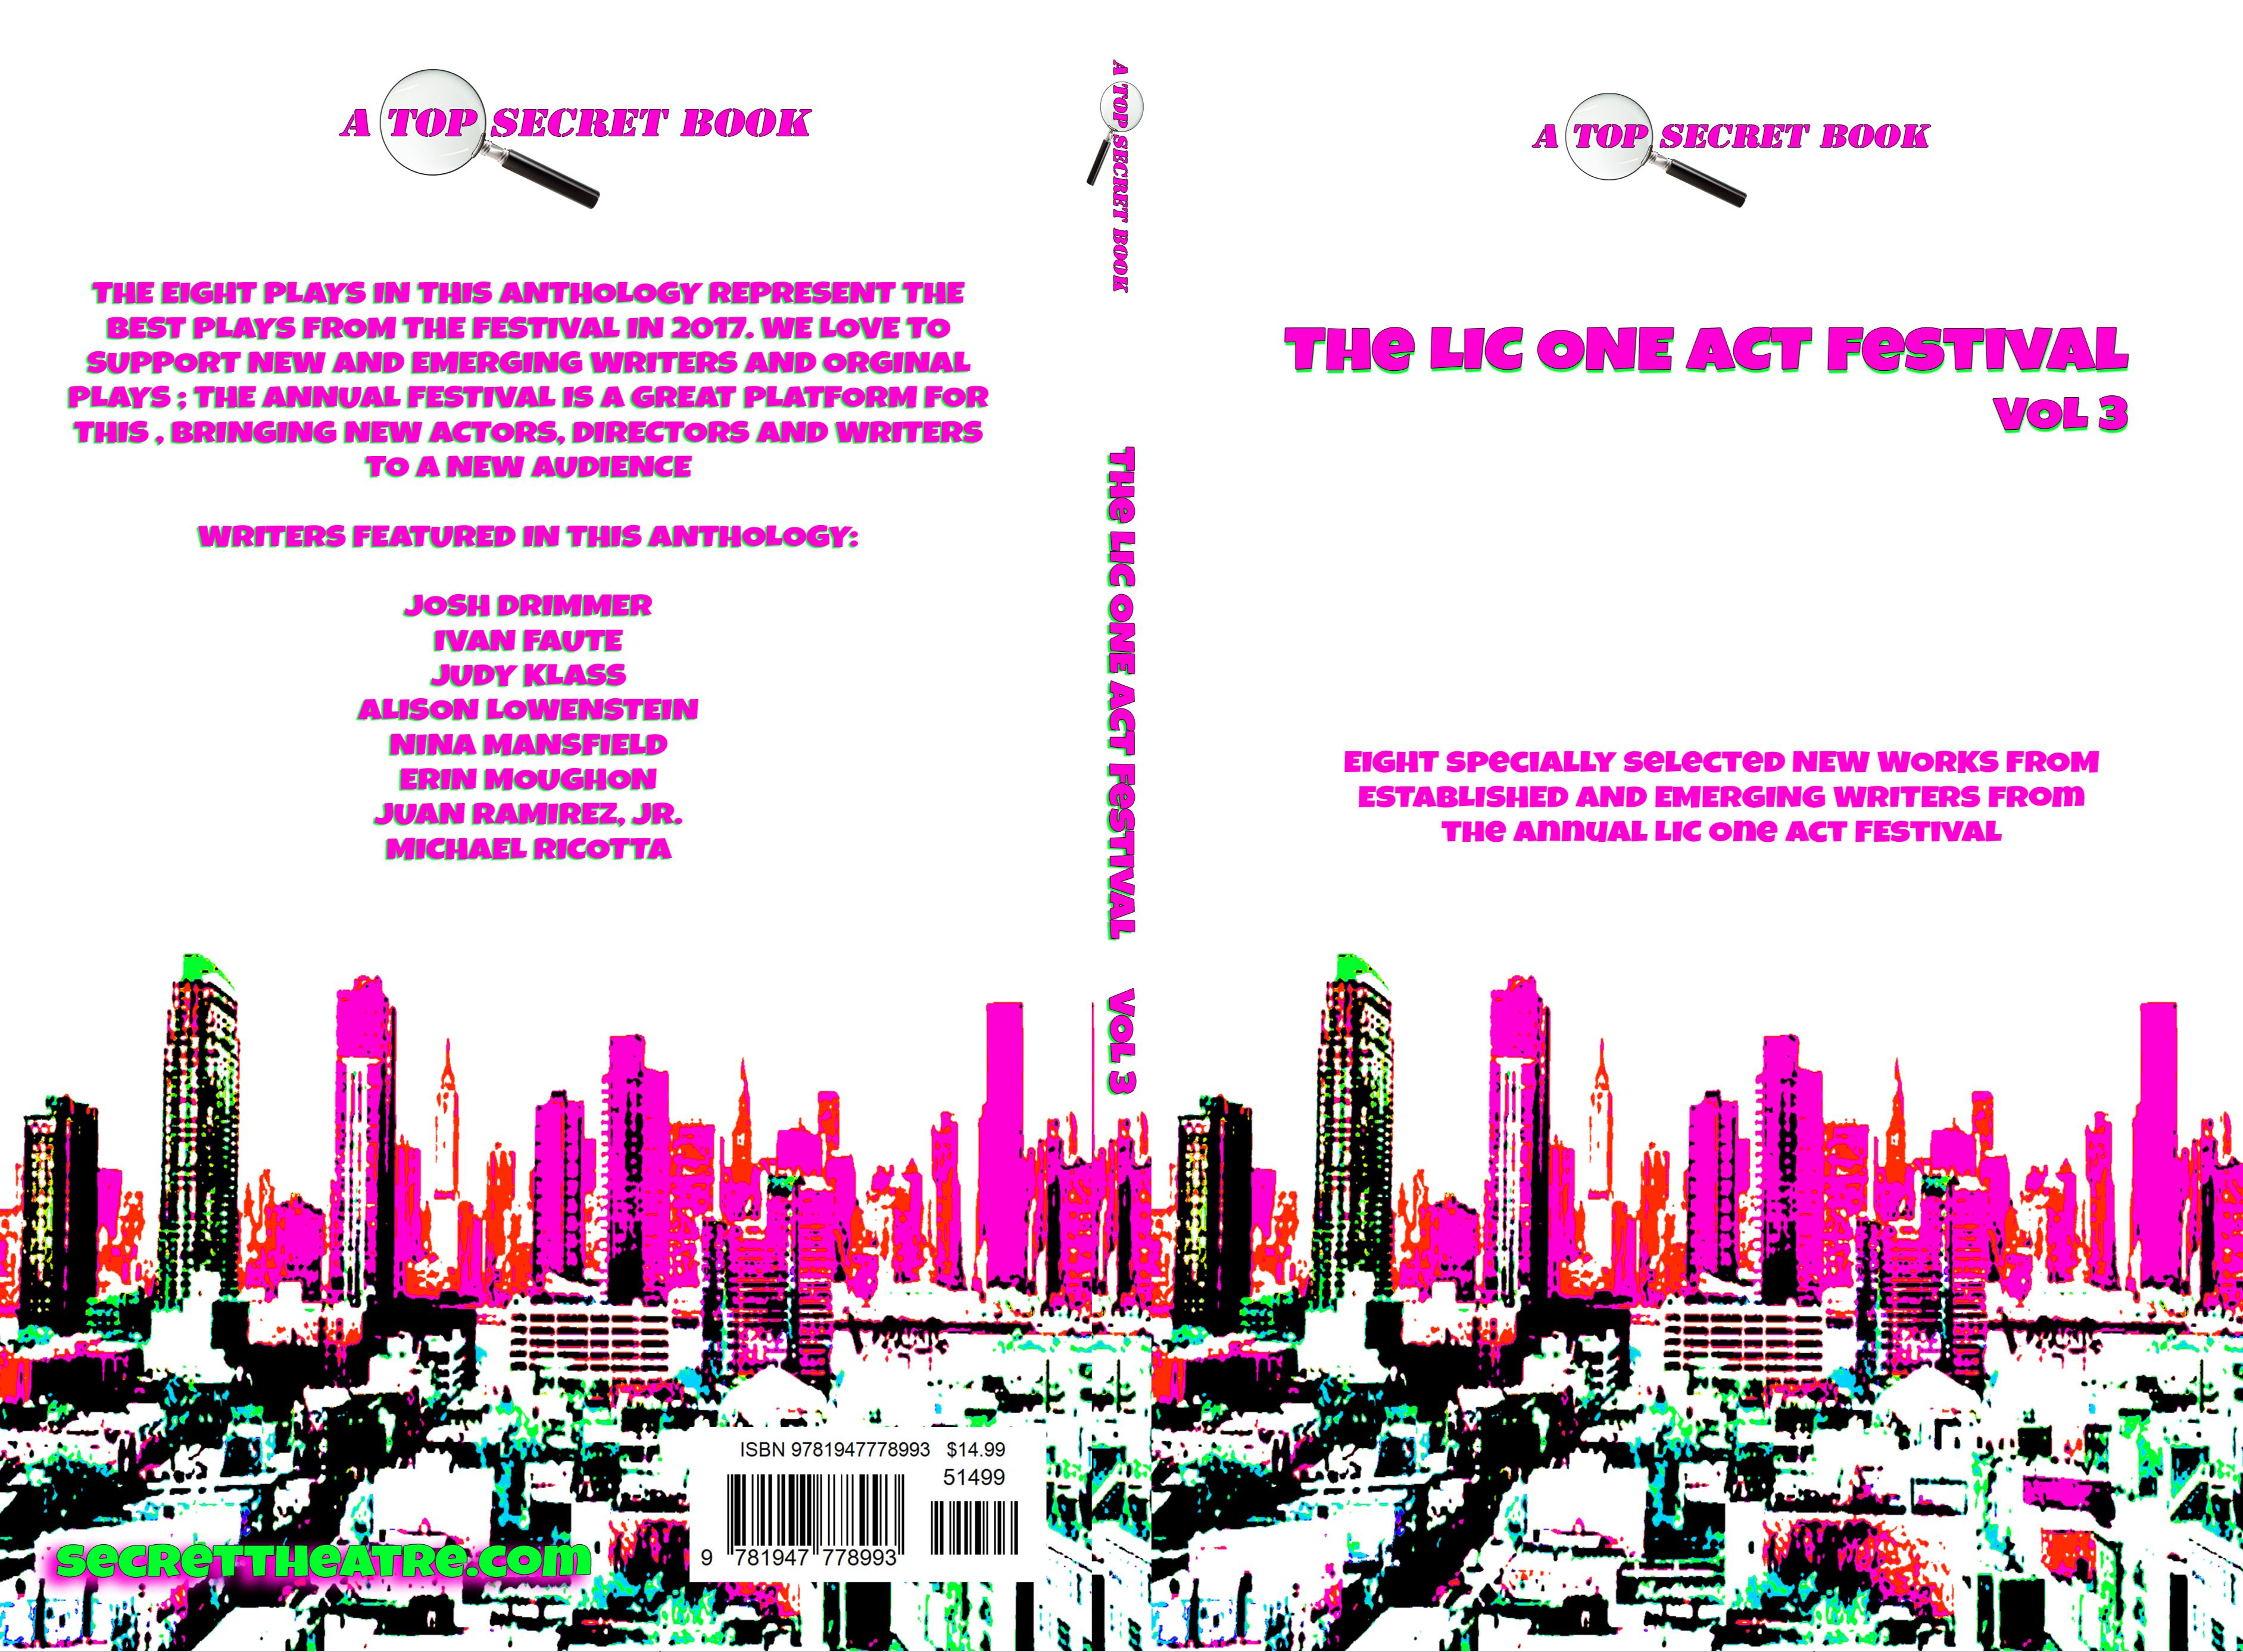 The LIC ONE ACT FESTIVAL VOL 3 cover image